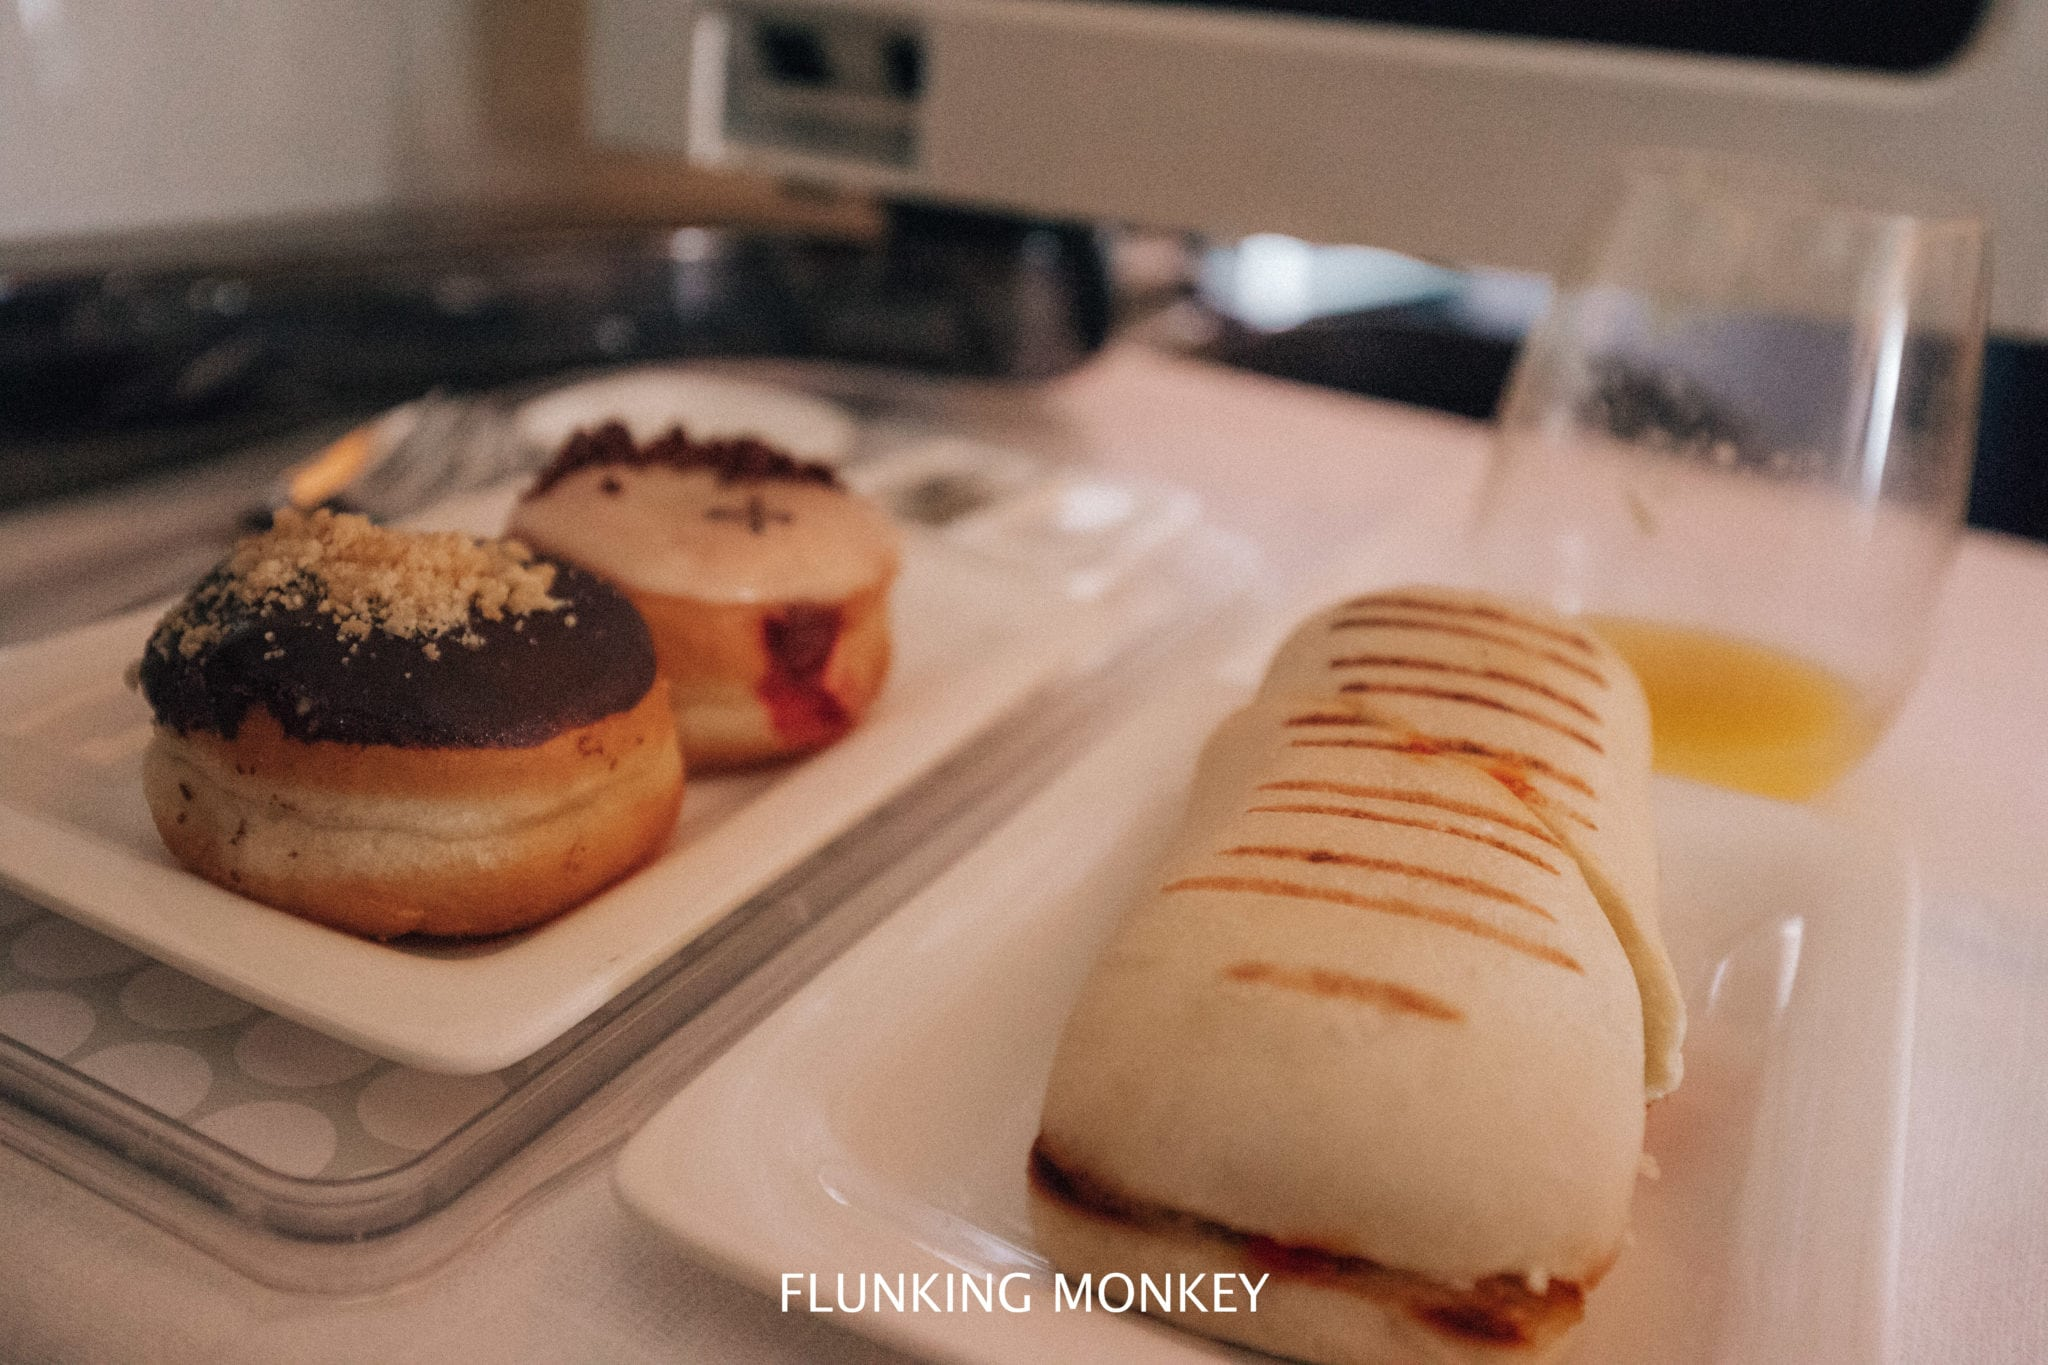 Air New Zealand - Flying With Airline Of The Year 2018 - Business Class Doughnuts - Flunking Monkey